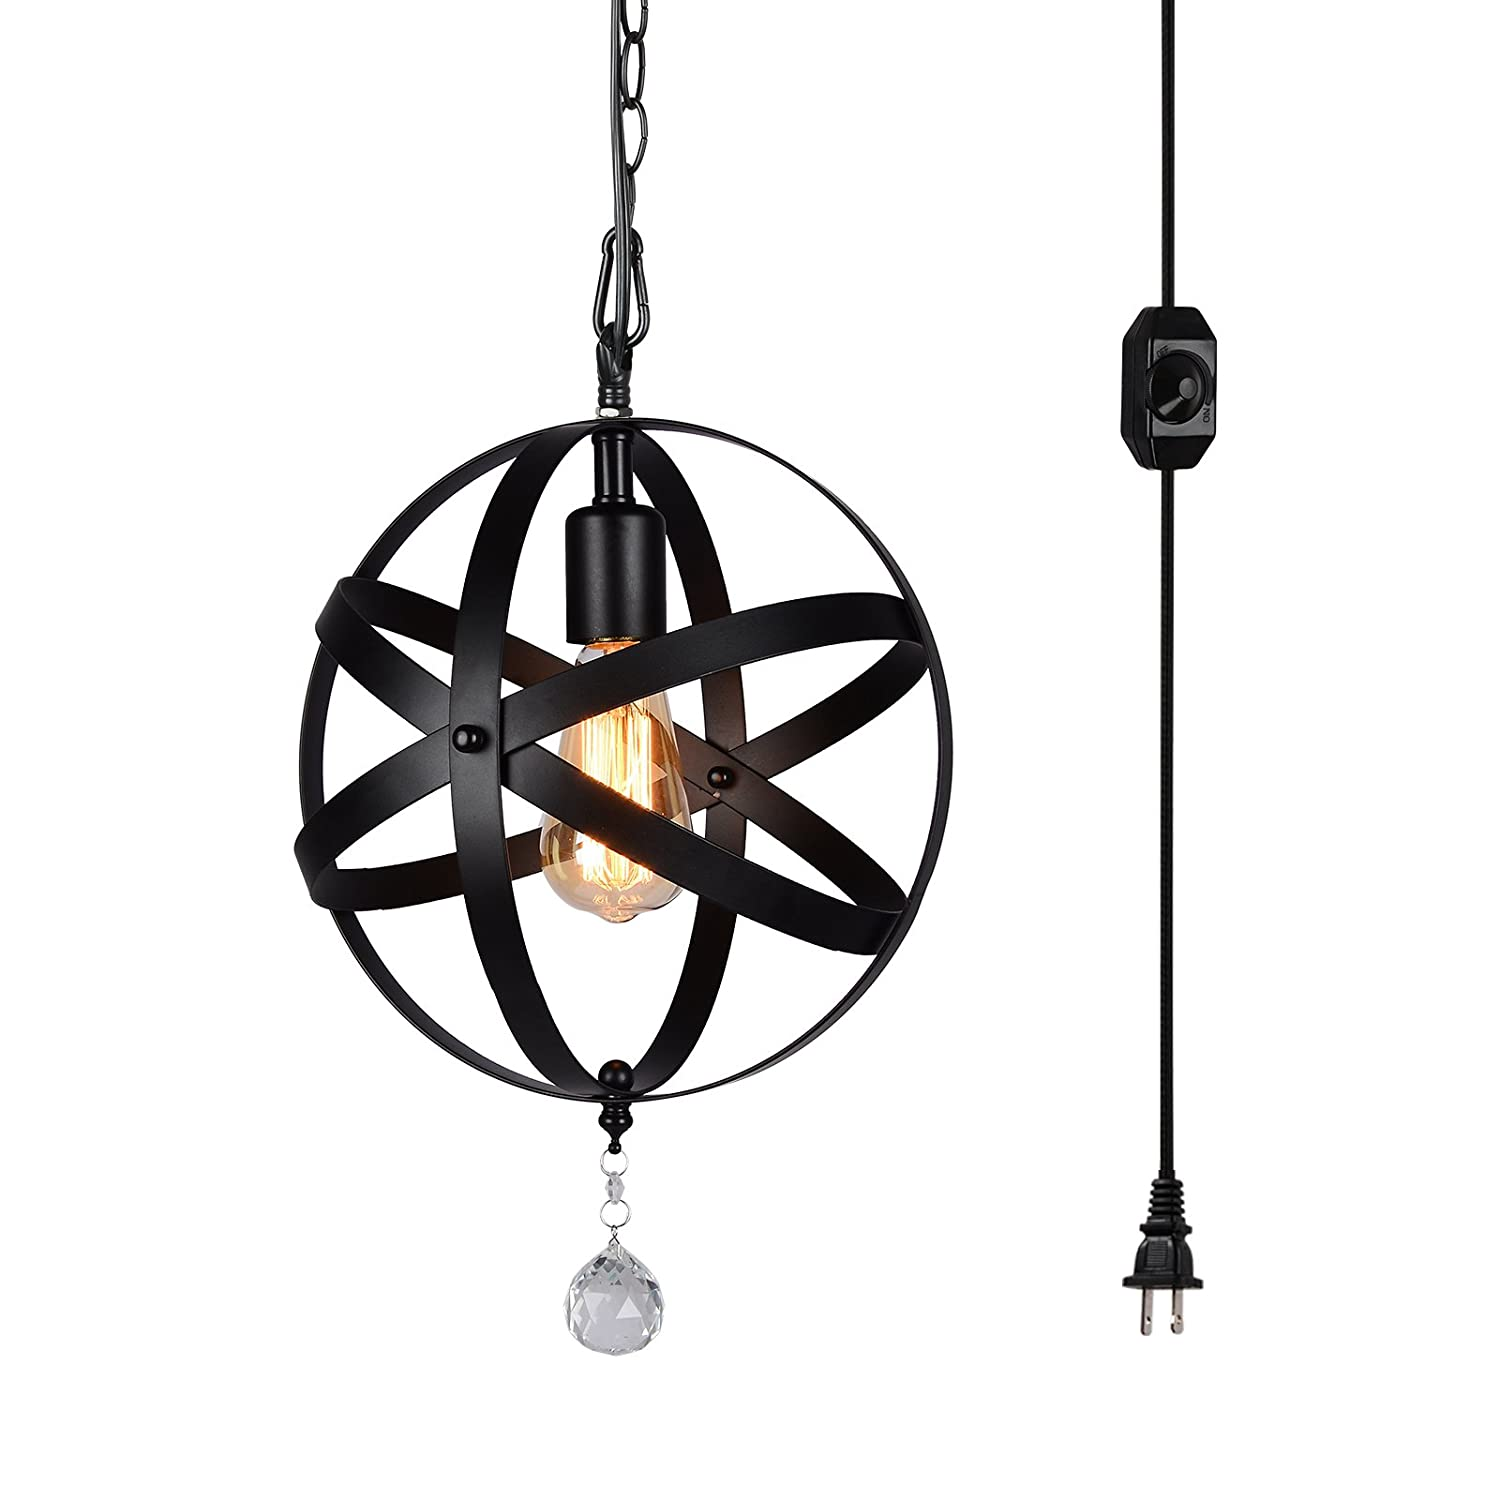 Pendant Light Fixtures | Amazon.com | Lighting & Ceiling Fans ...